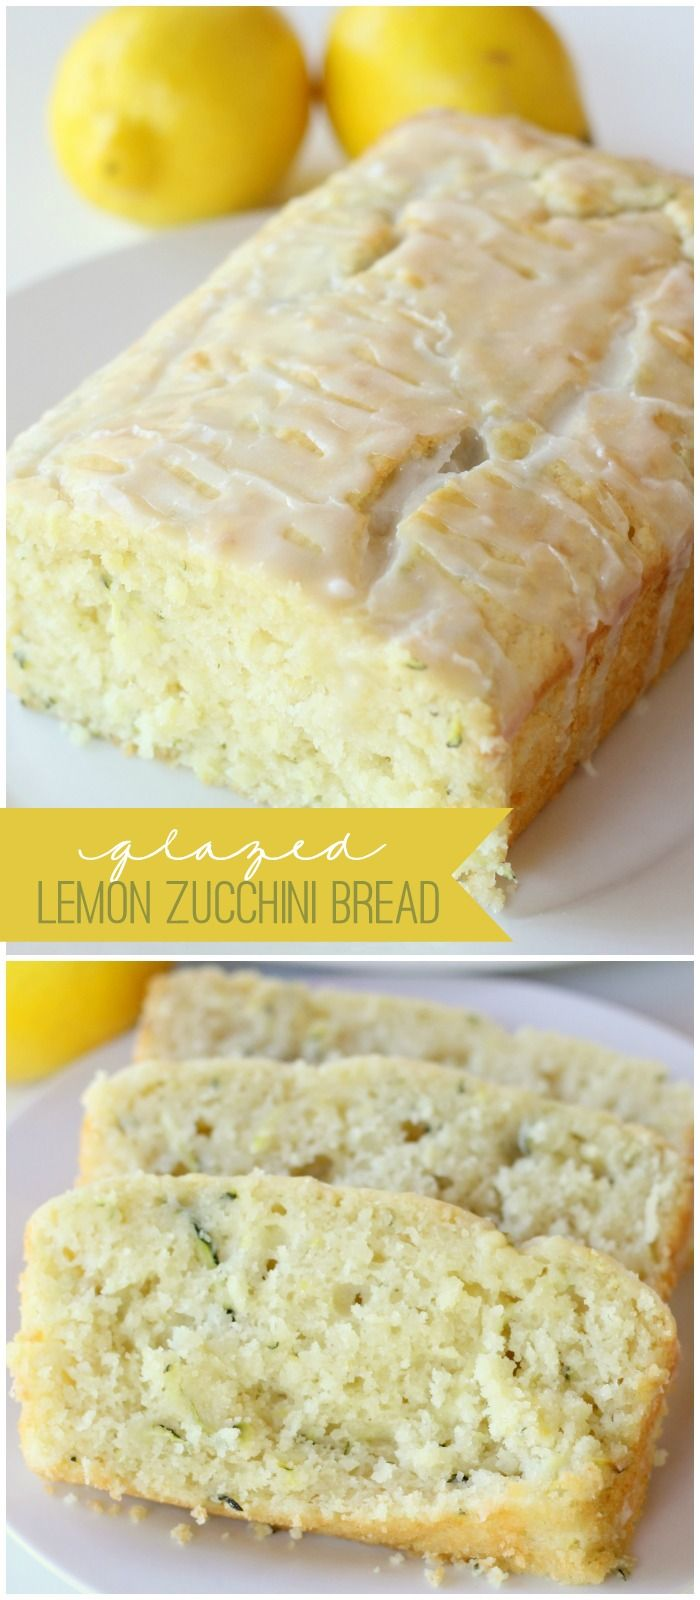 Delicious Glazed Lemon Zucchini Bread recipe { lilluna.com }Zucchini Recipe, Lemon Glaze Zucchini Bread, Lemon Cake, Breads Recipe, Lemon Zucchini Breads, Sugar Free Zucchini Bread, Lemon Recipe, Glaze Lemon, Lemon Bread